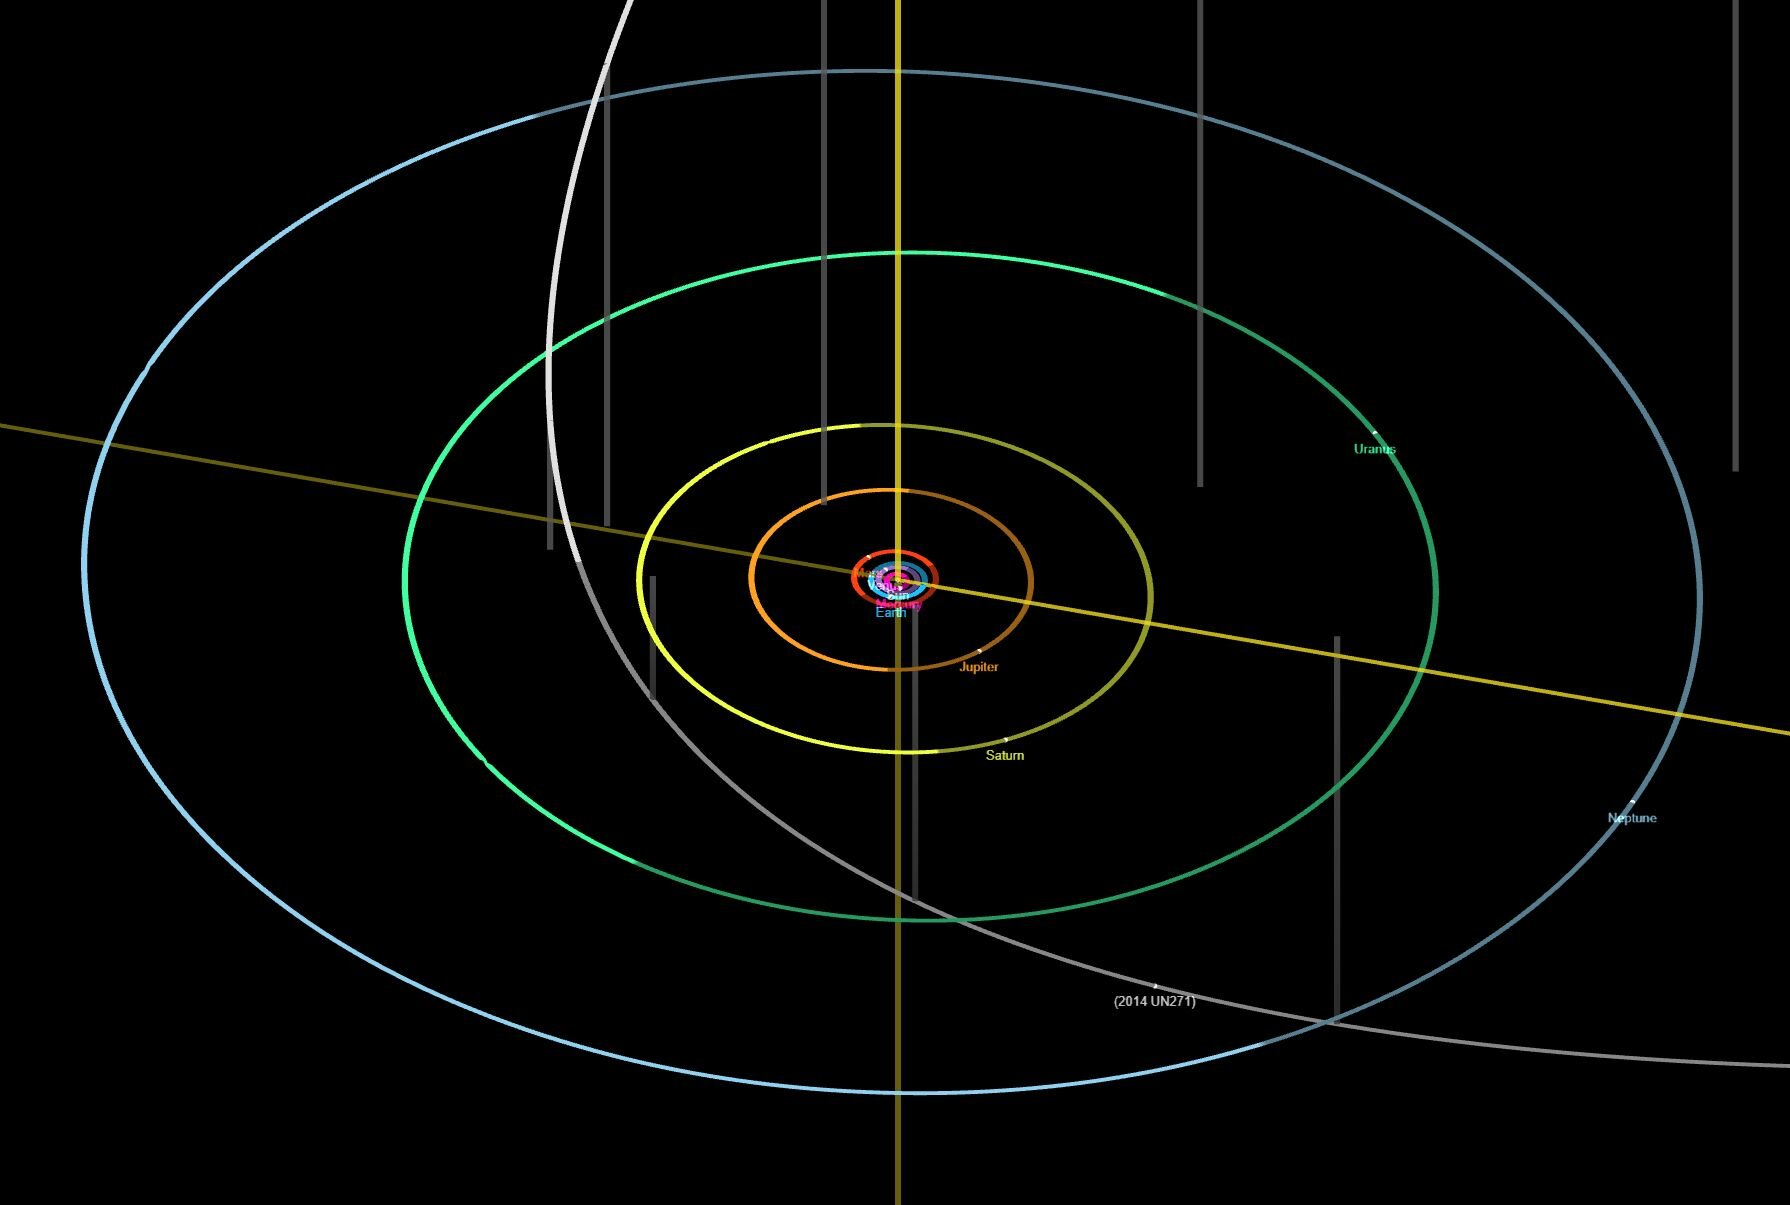 Space object with orbit stretching into the Oort cloud discovered